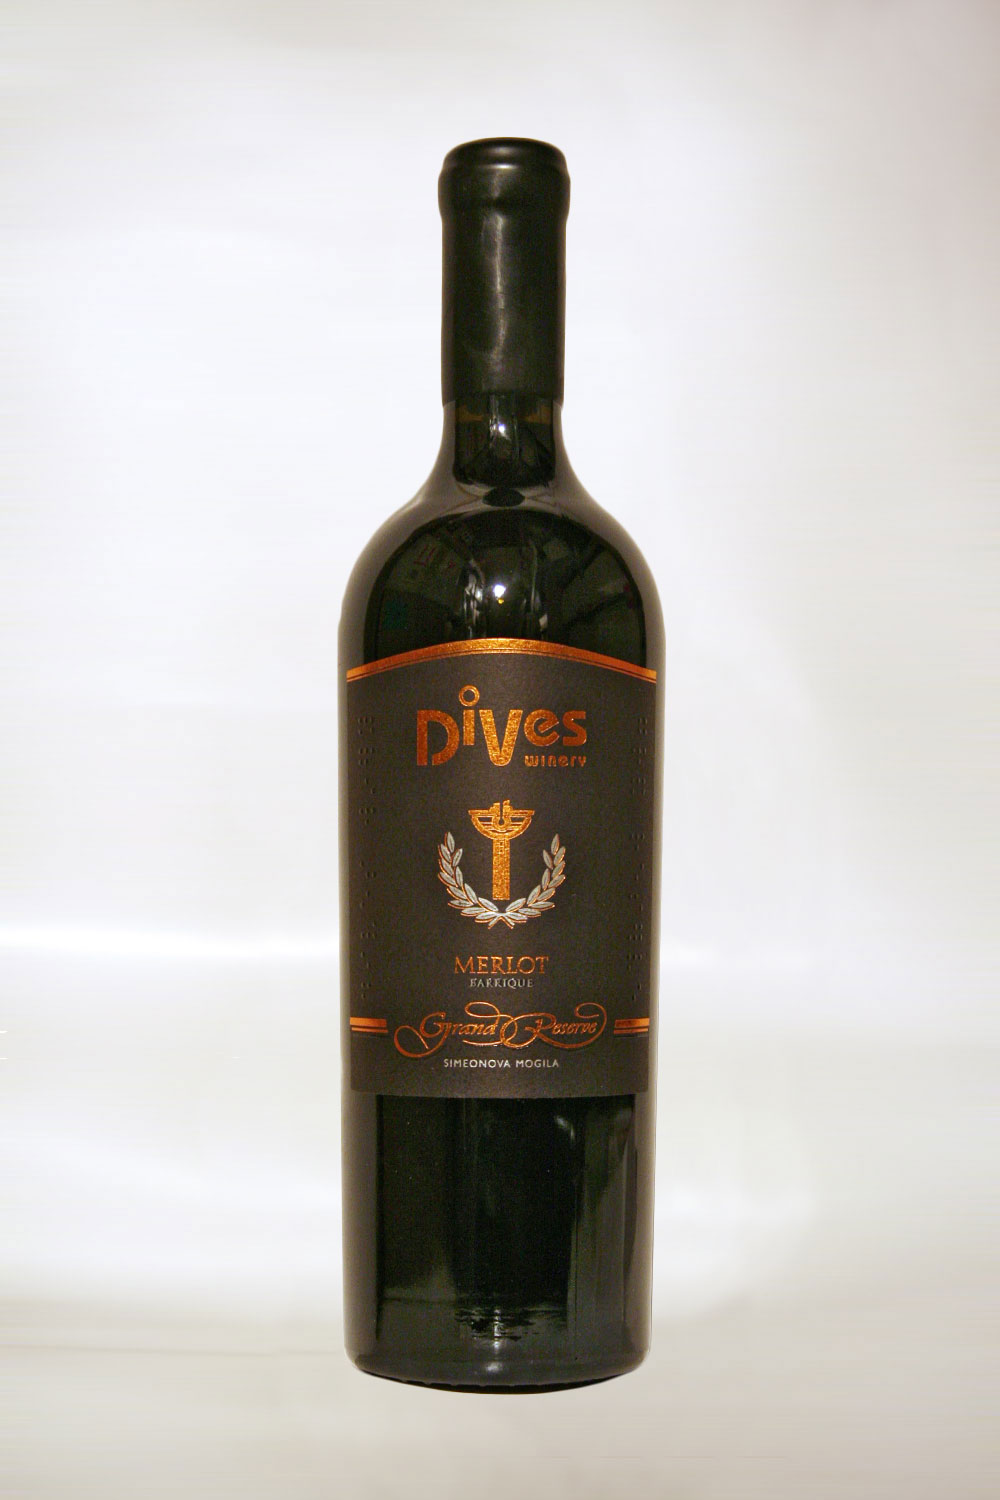 DiVes Merlot Barrique Grand Reserve 2013